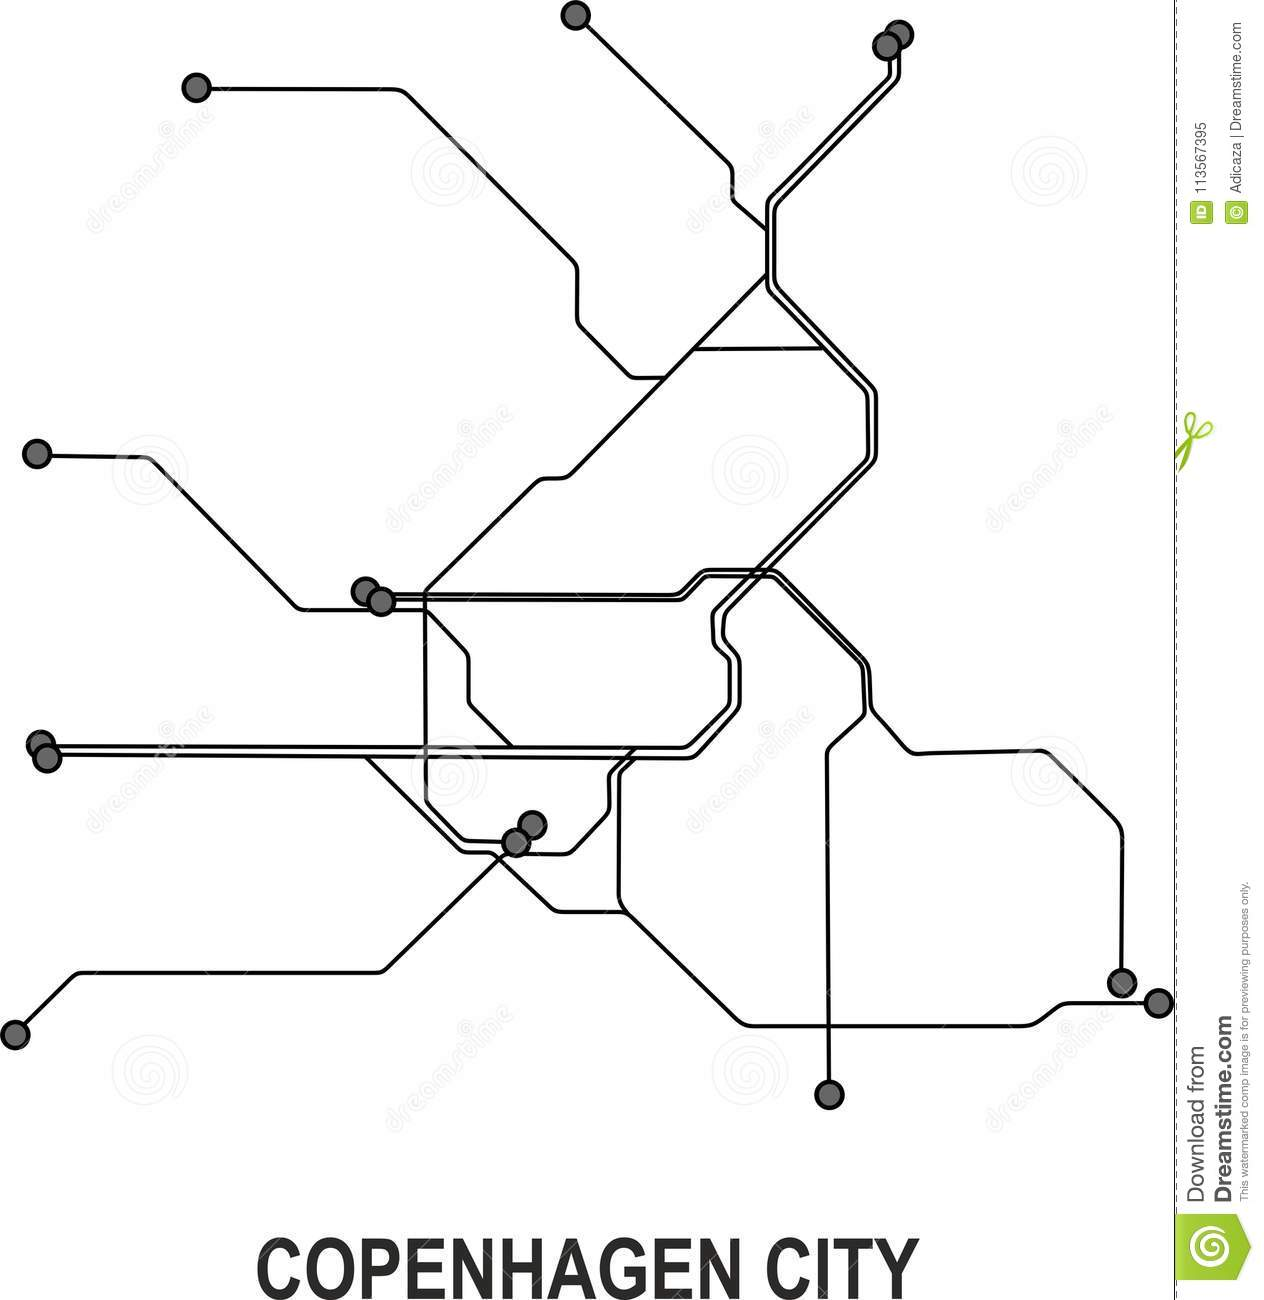 Subway Map Of Copenhagen.Copenhagen City Map Stock Vector Illustration Of Format 113567395